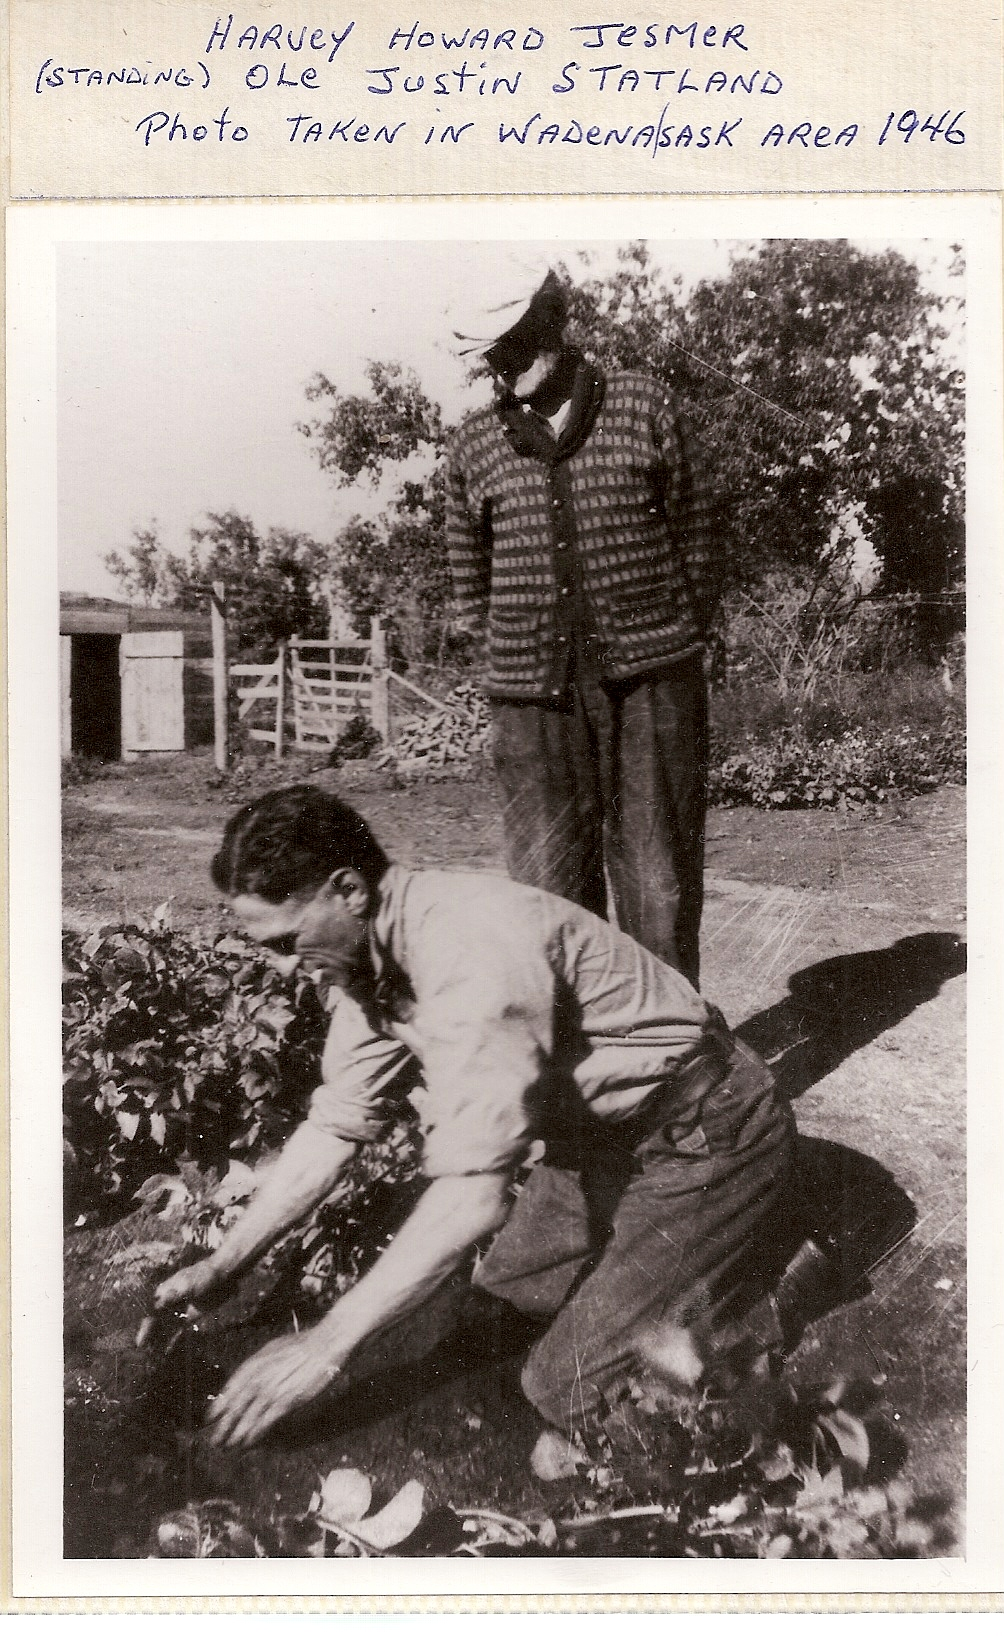 Harvey jesmer in garden with Ole Statland-1946